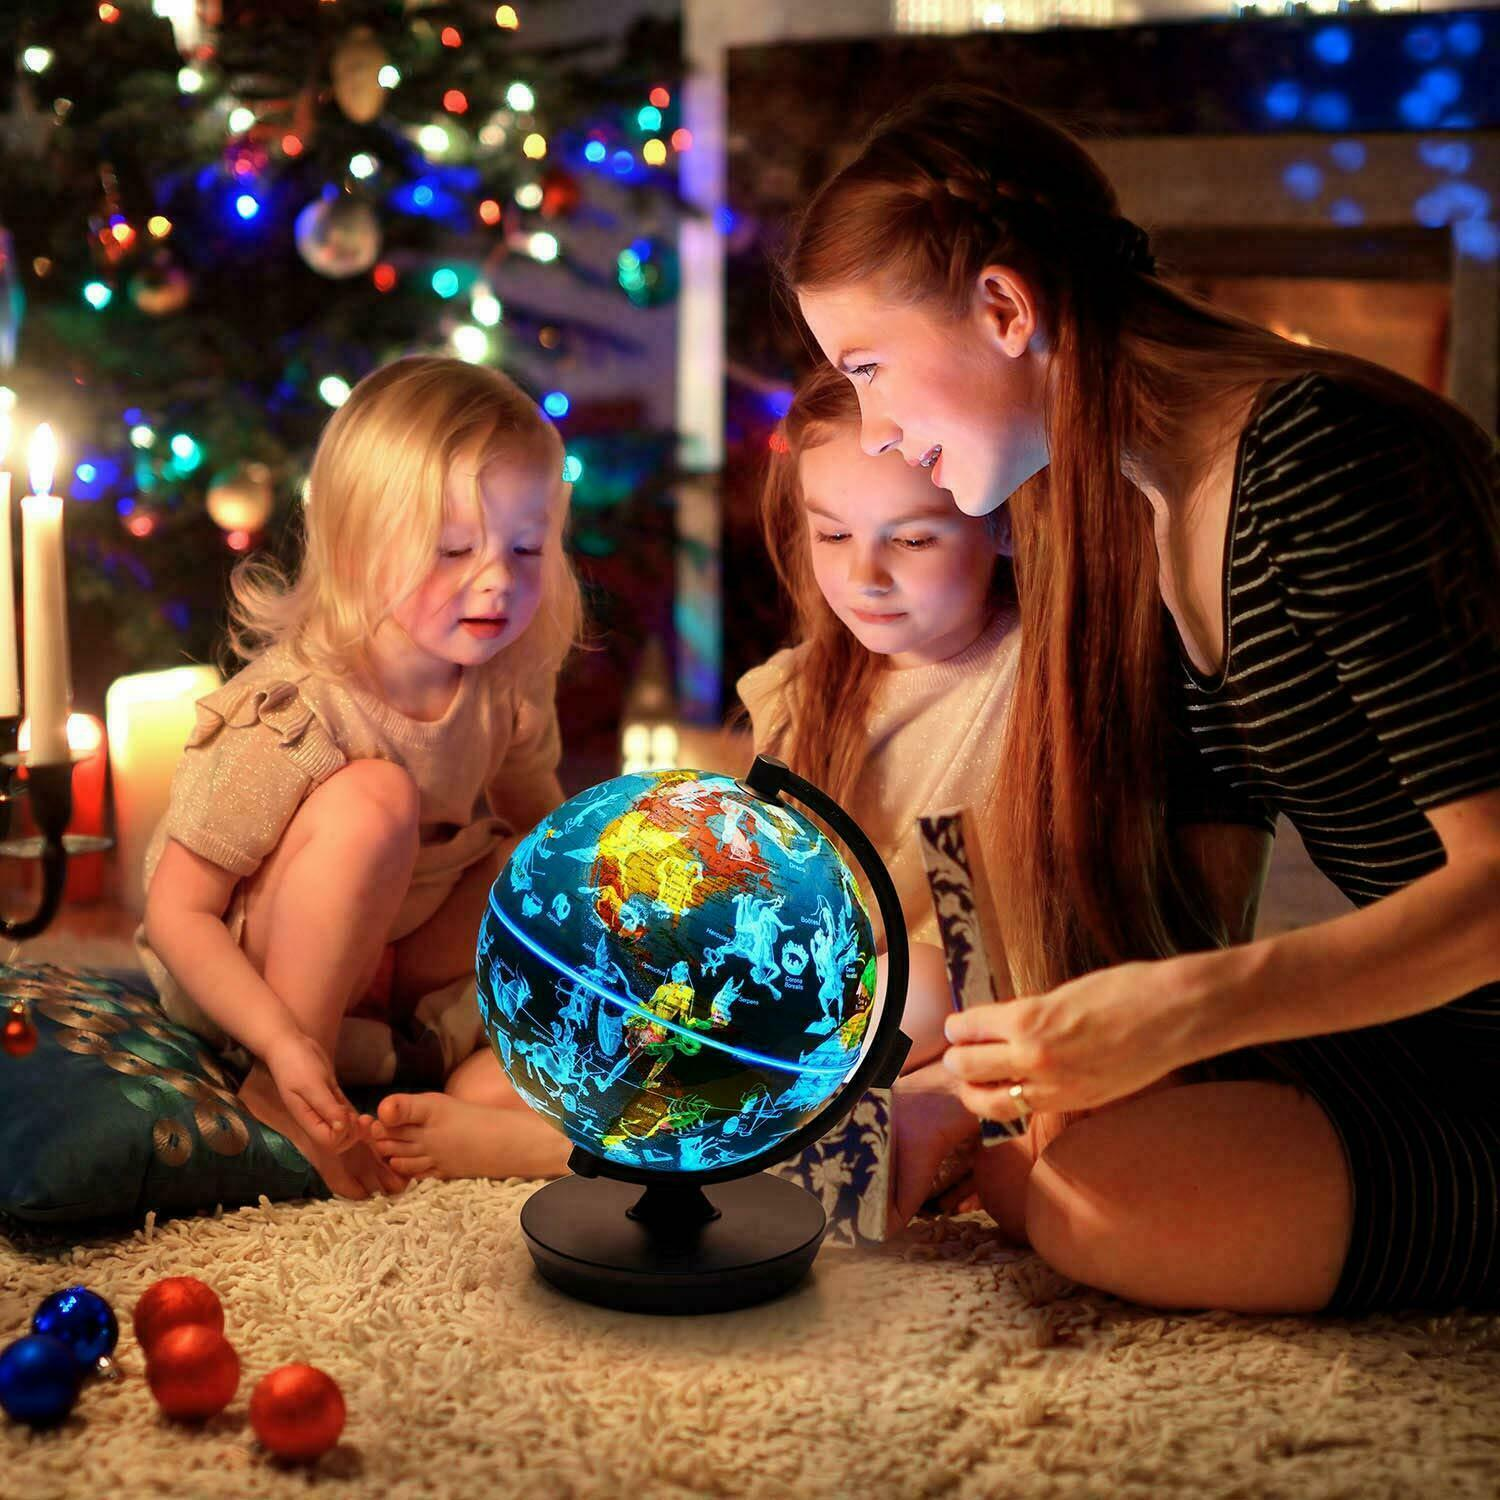 Oregon Scientific 3 In 1 Illuminated Smart World Children's Globe AR App Gift Educational